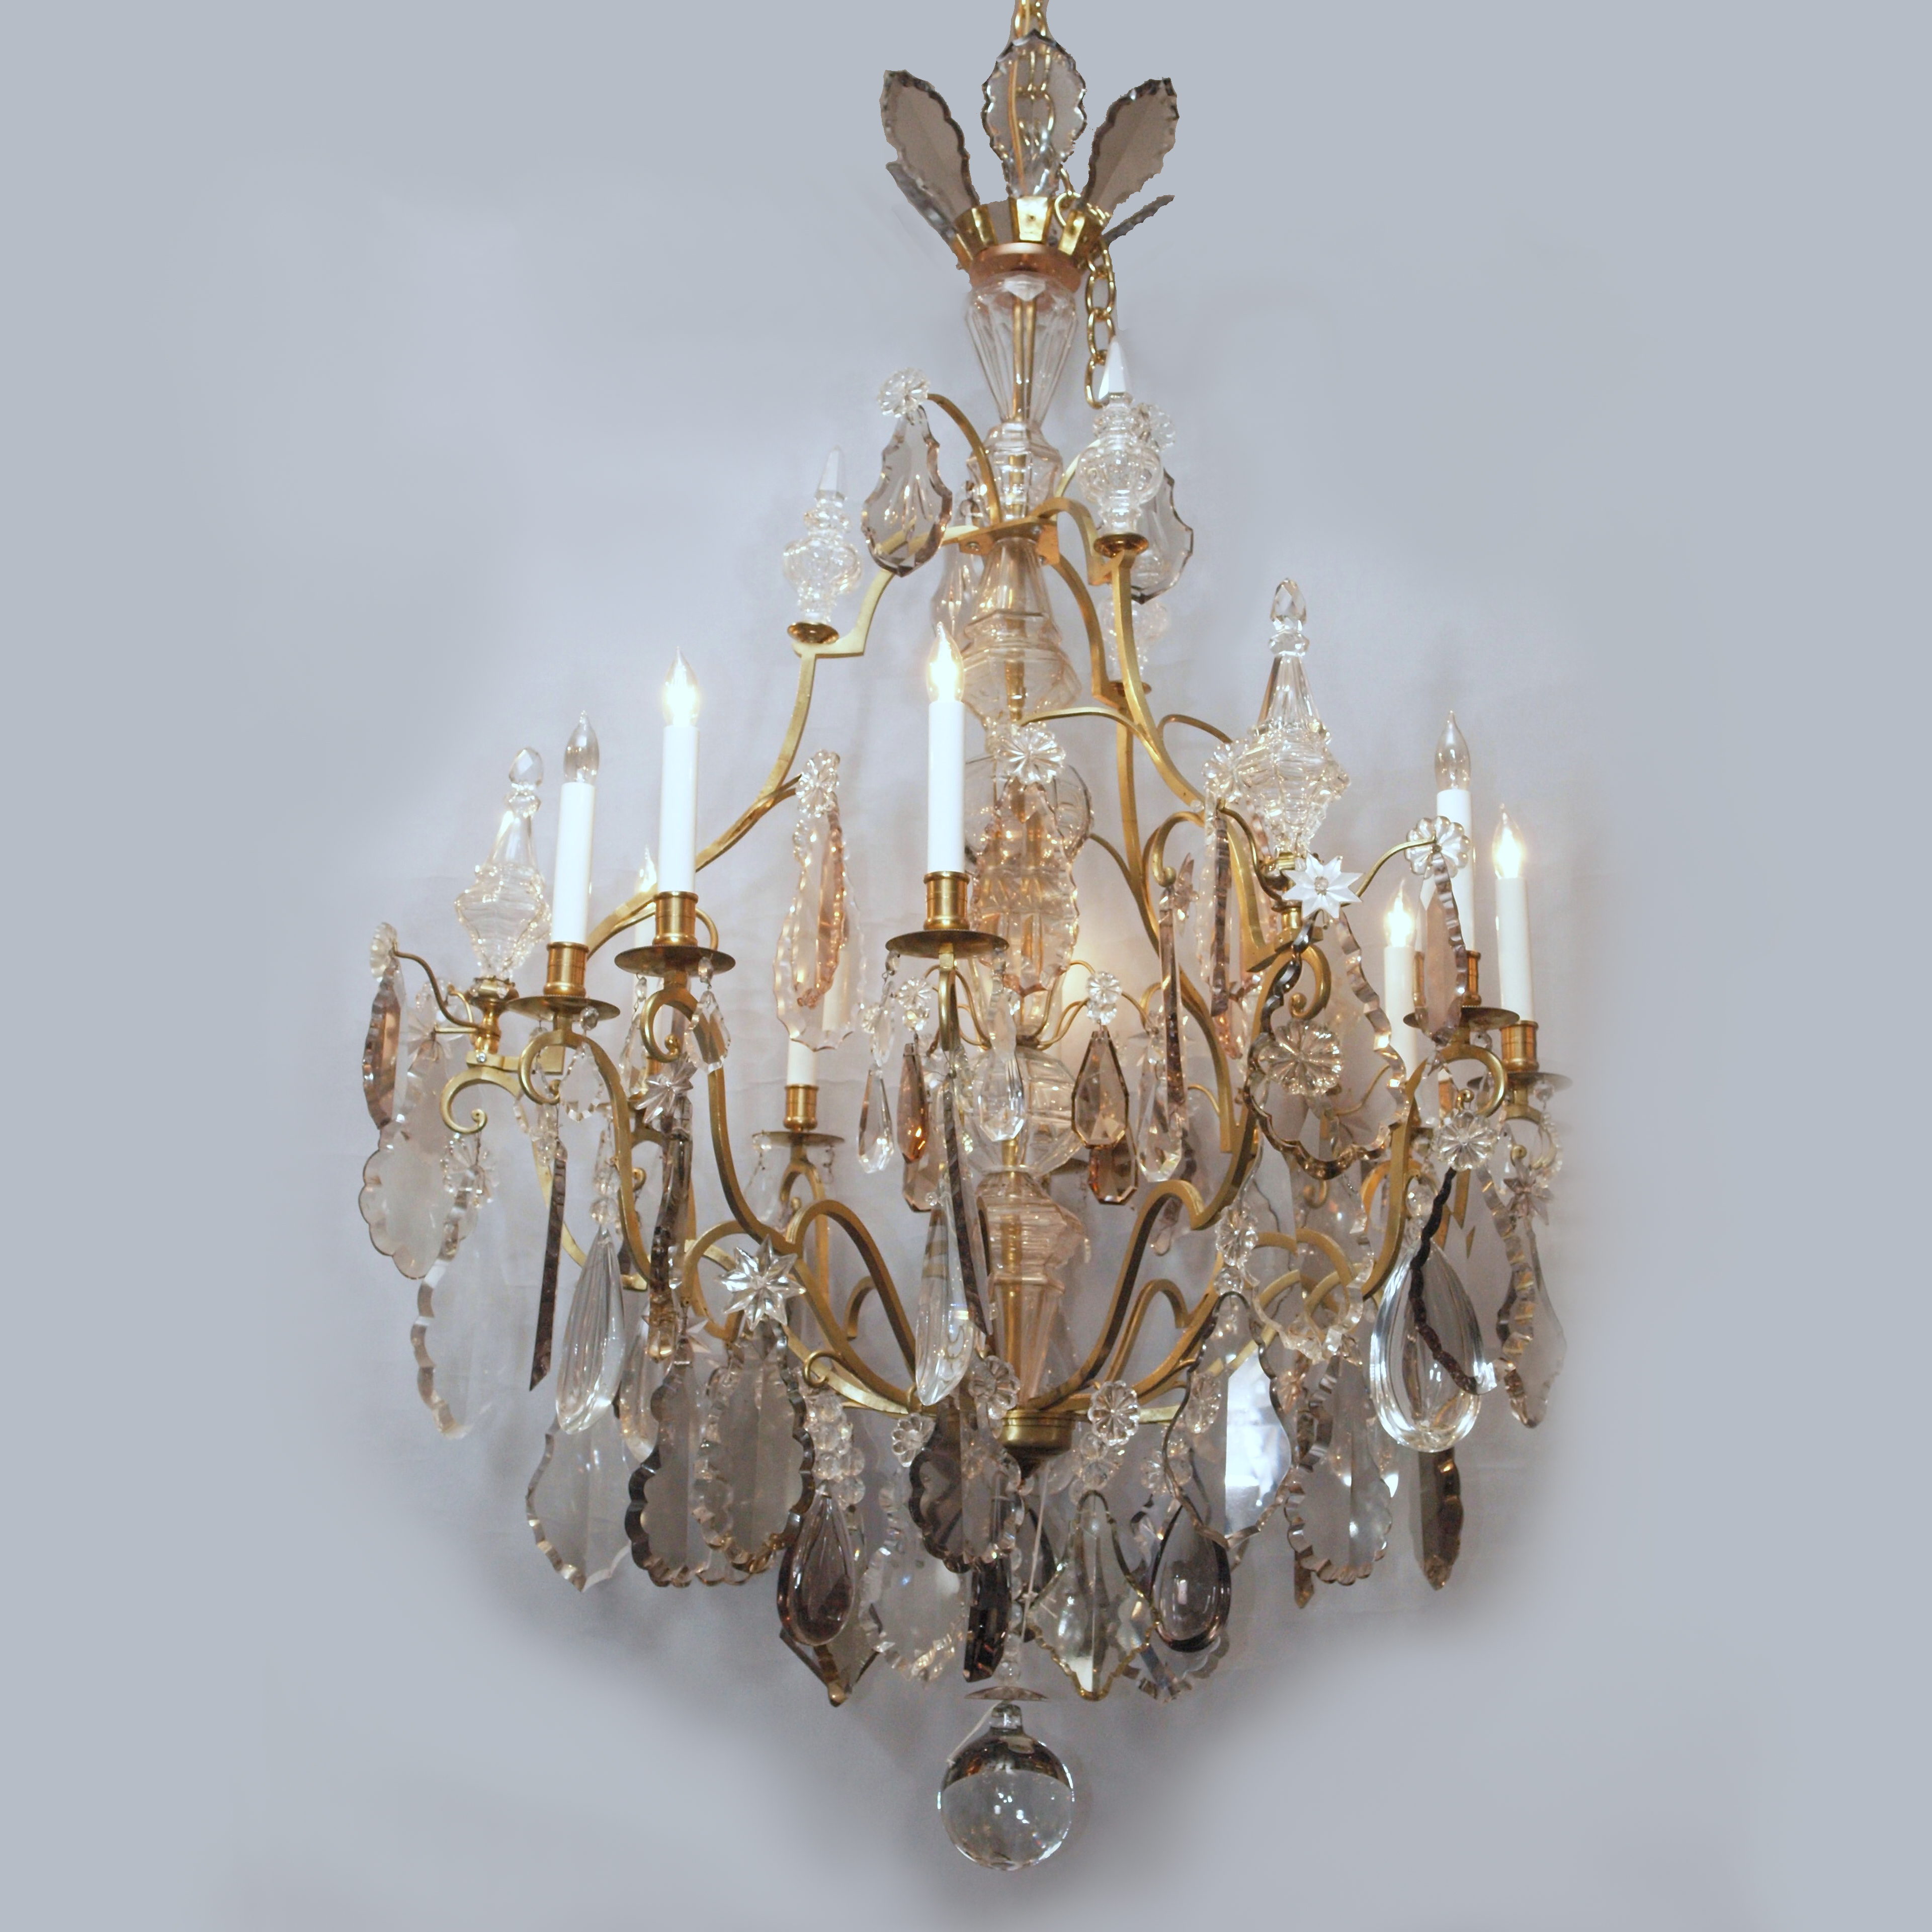 Antique french baccarat crystal chandelier circa 1860 keils antique french baccarat crystal chandelier circa 1860 aloadofball Image collections